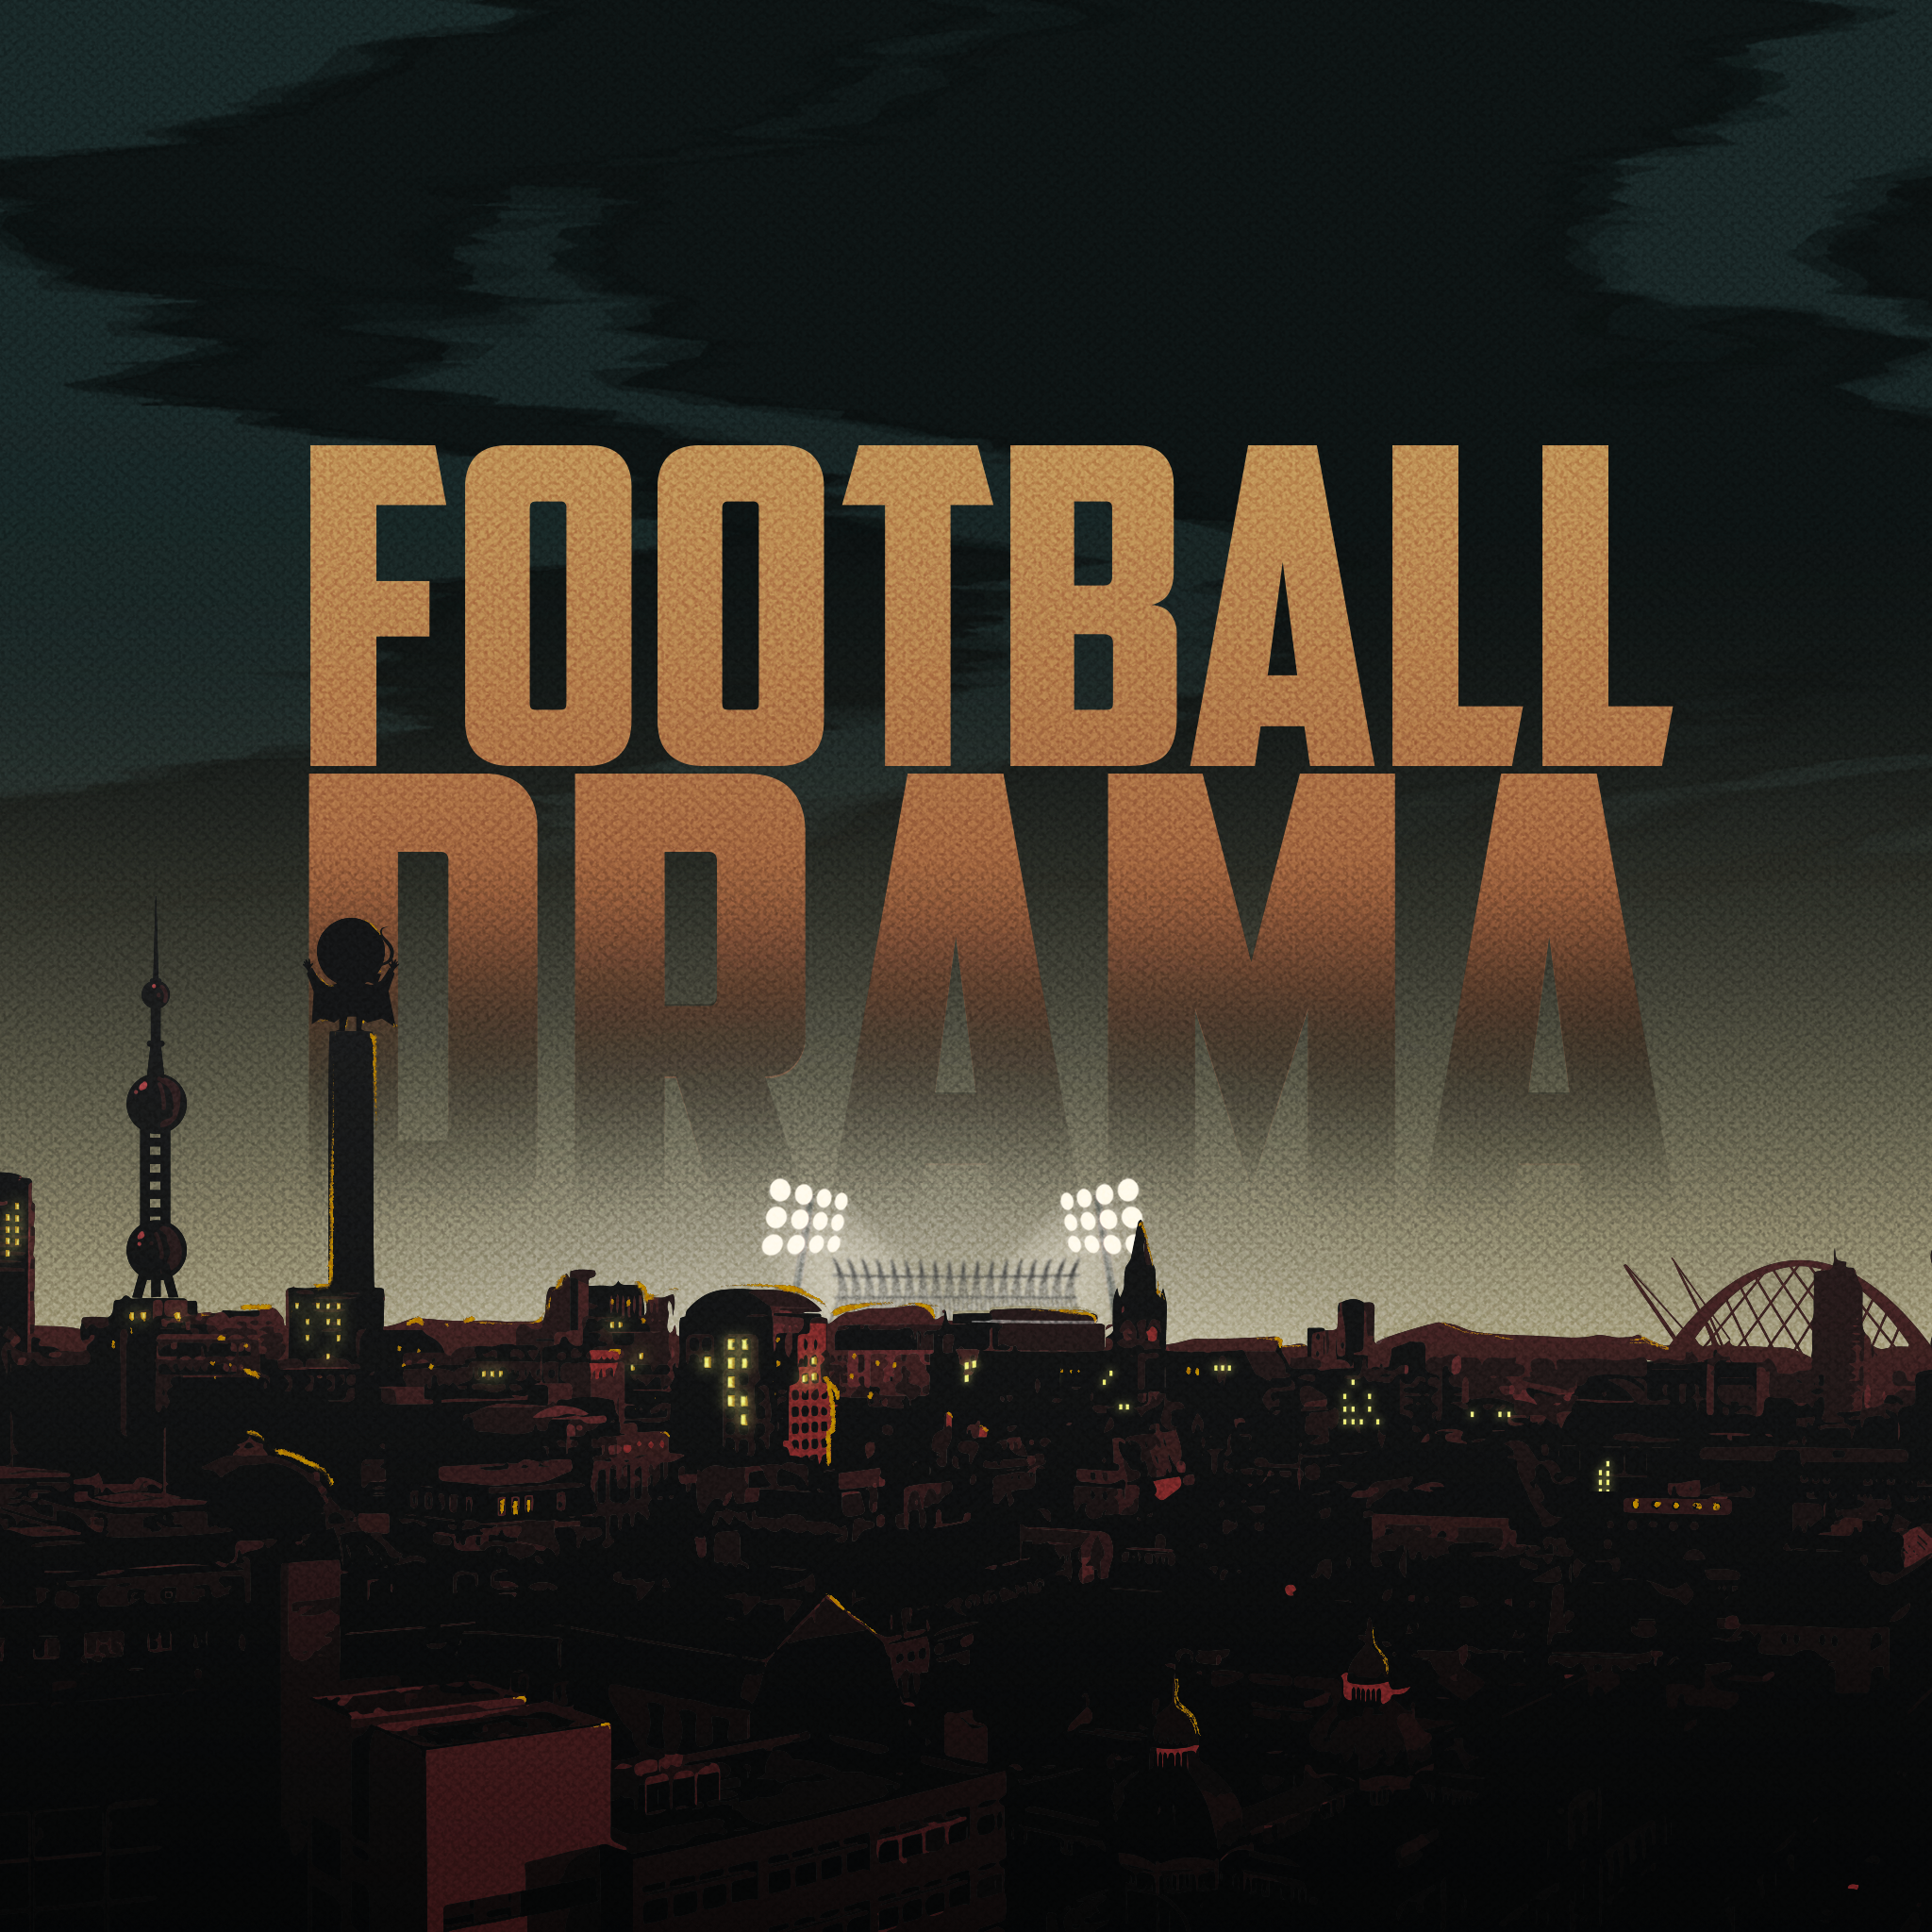 Football Drama poster with town